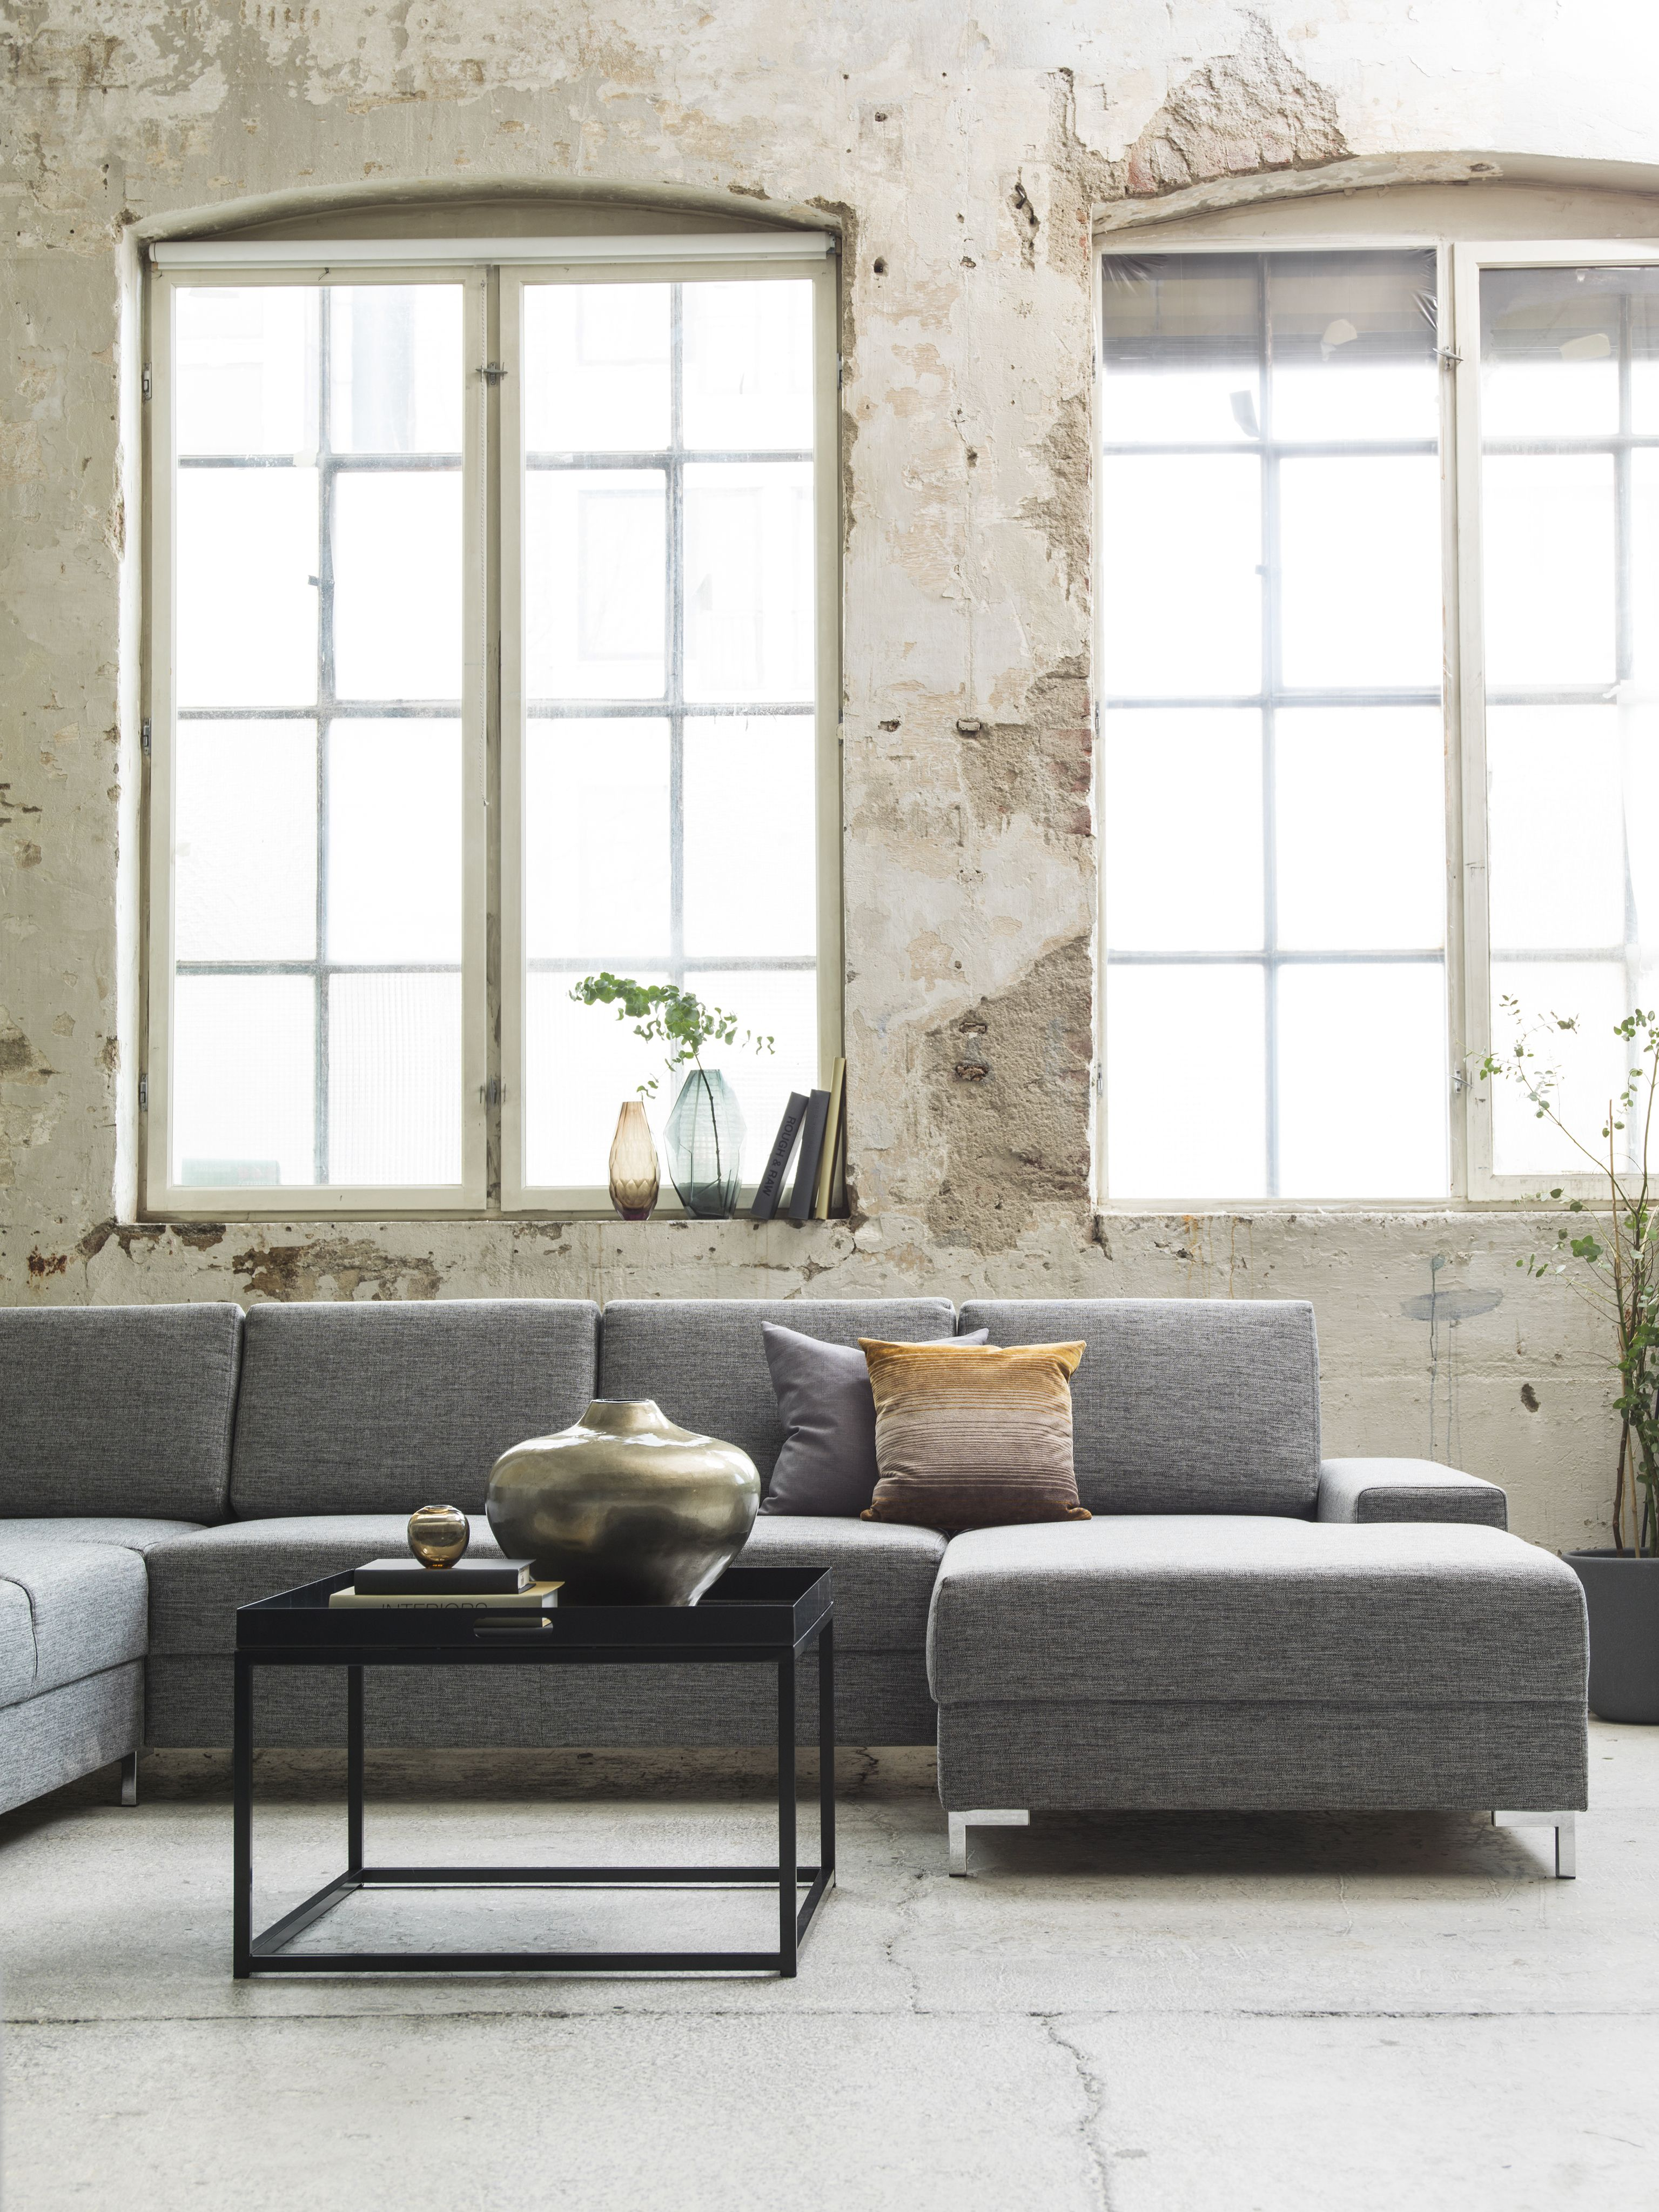 skeidar sofa chocolate color paredes baci living room